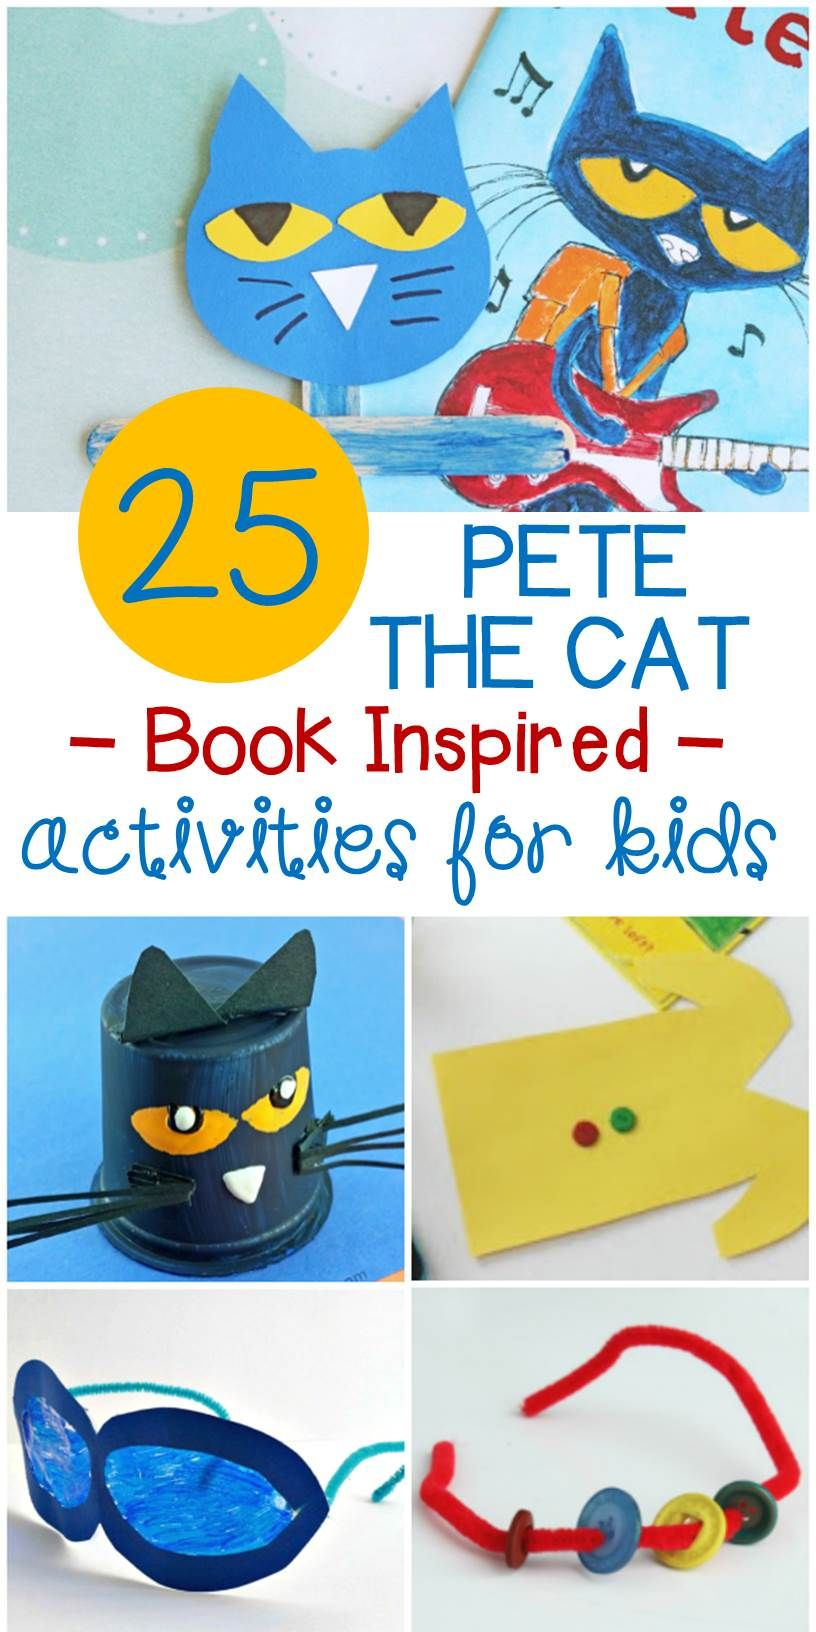 Pin On Books And Crafts For Kids